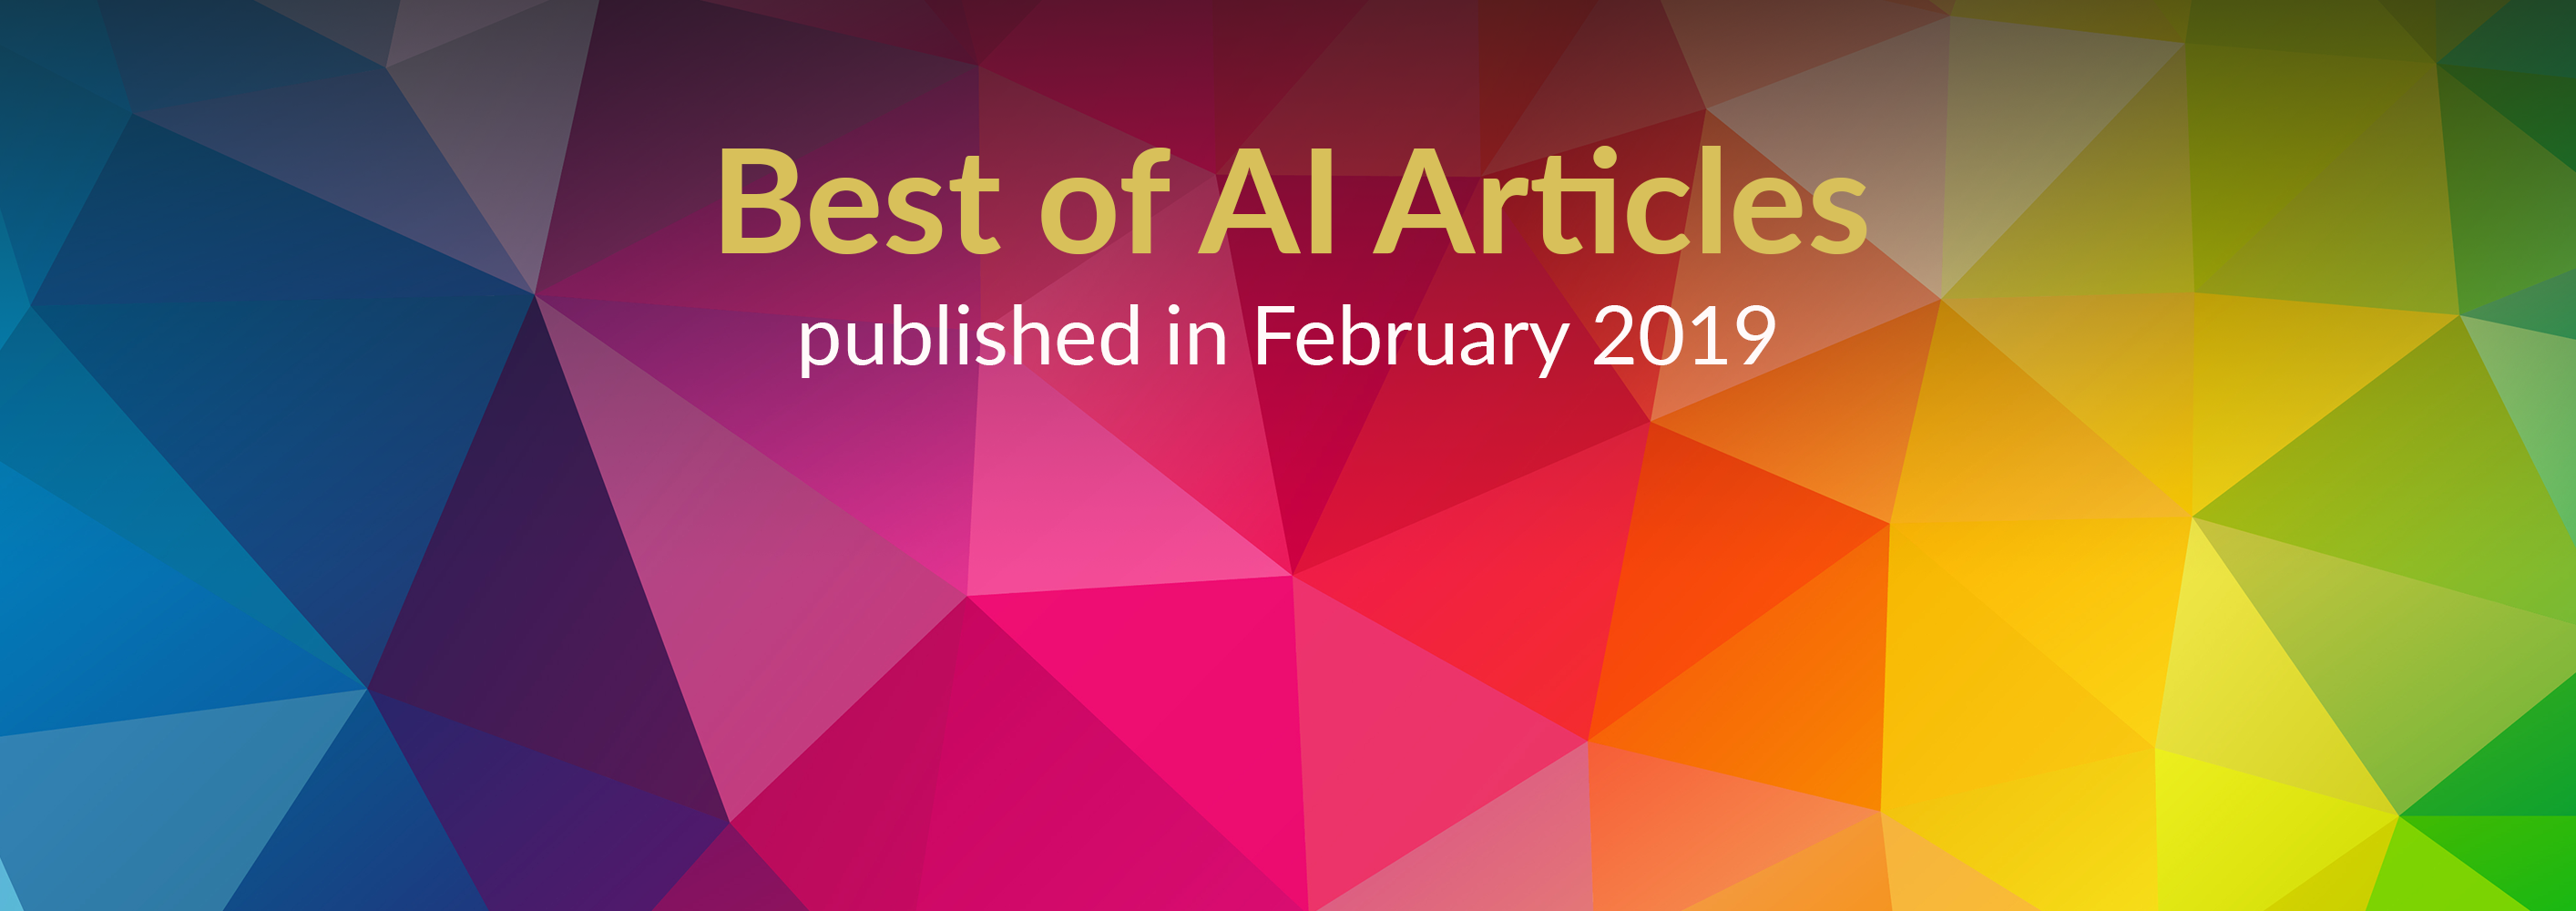 The Best of AI: New Articles Published This Month (February 2019)